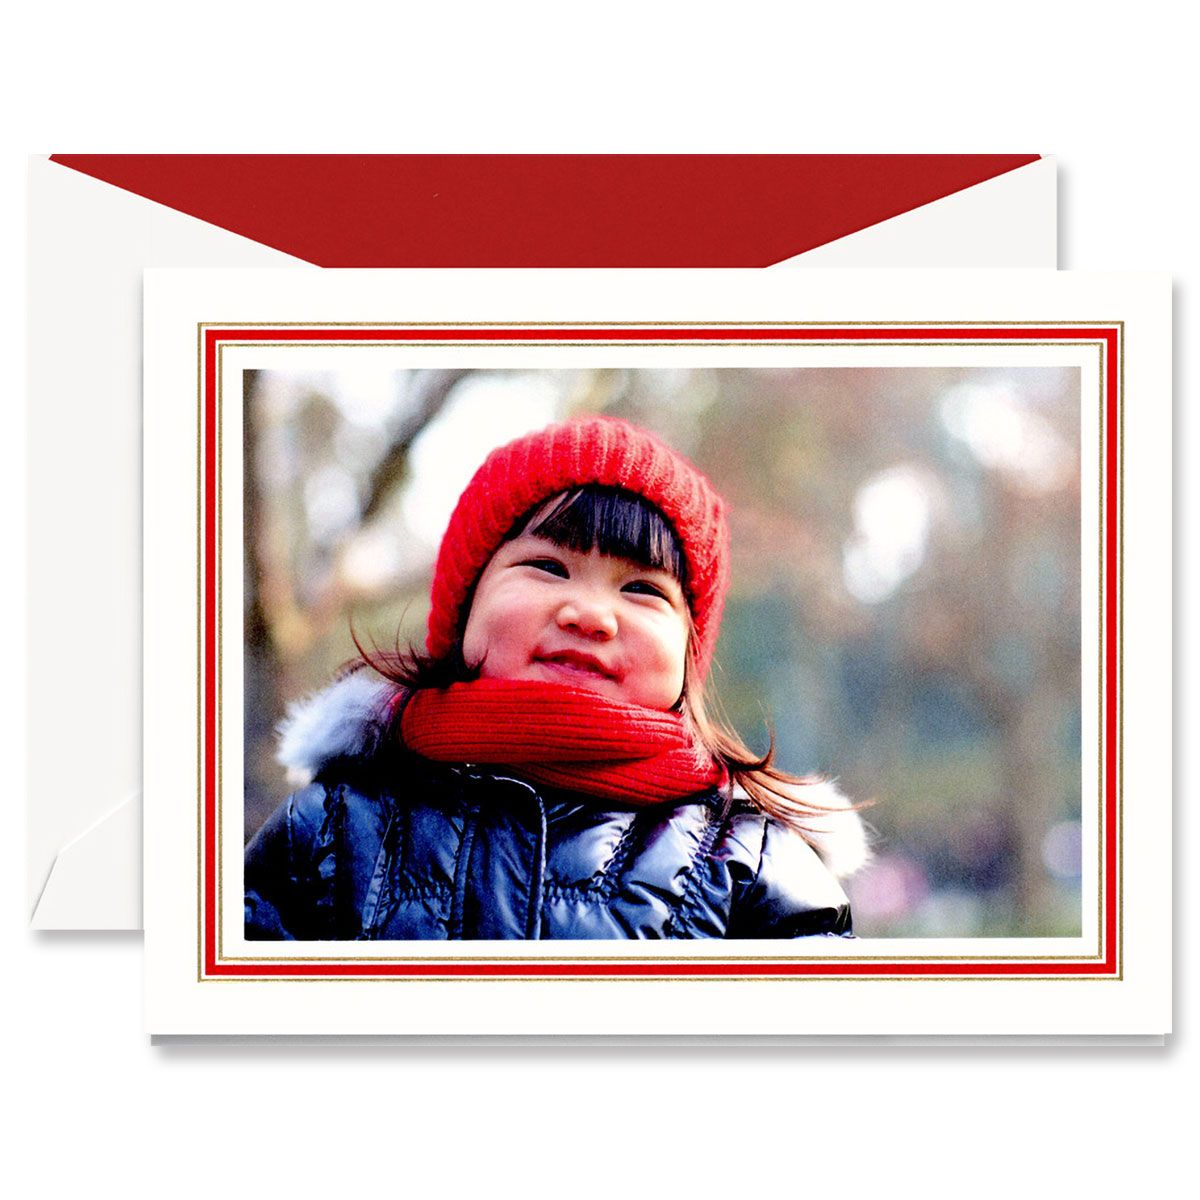 Classic Red and Gold Frame Mounted Photo Card